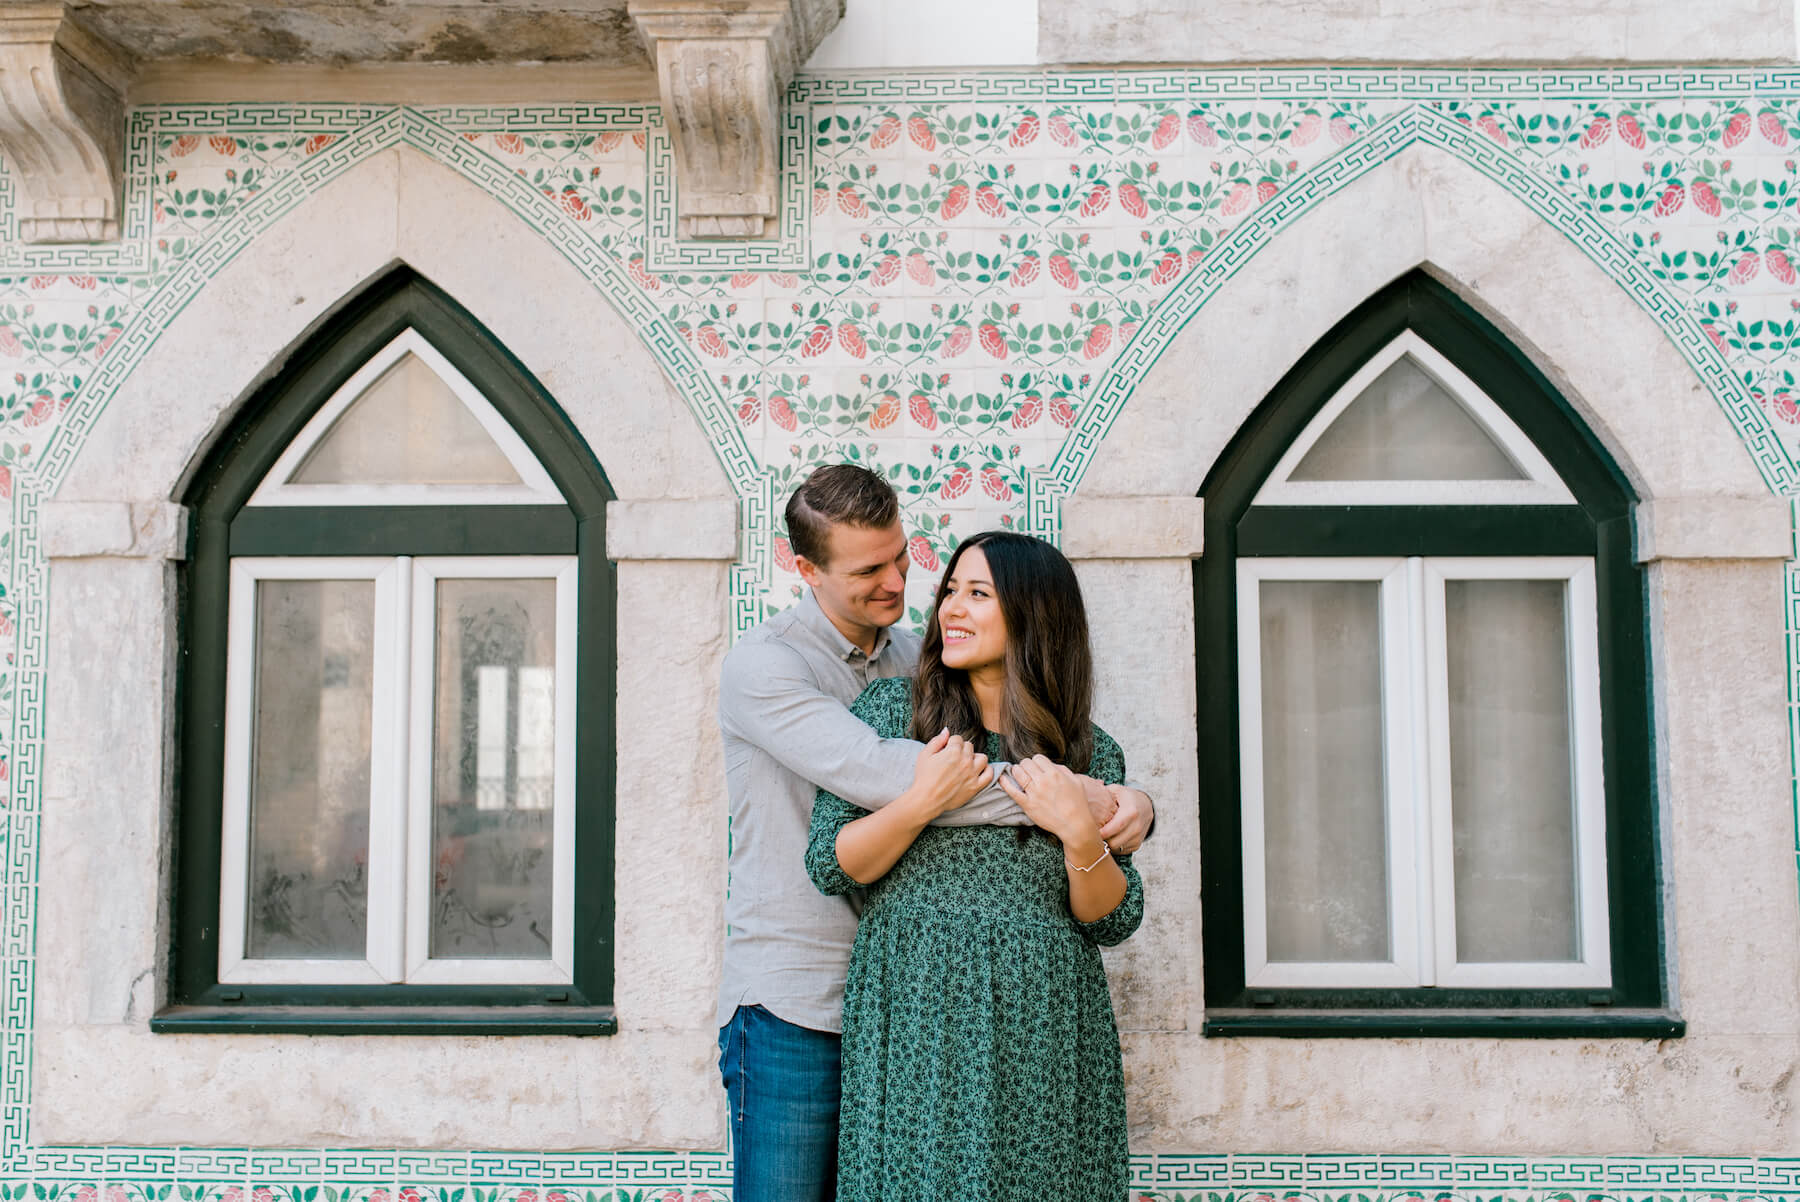 couple hugging each other and standing in front of a colorful building in Lisbon, Portugal